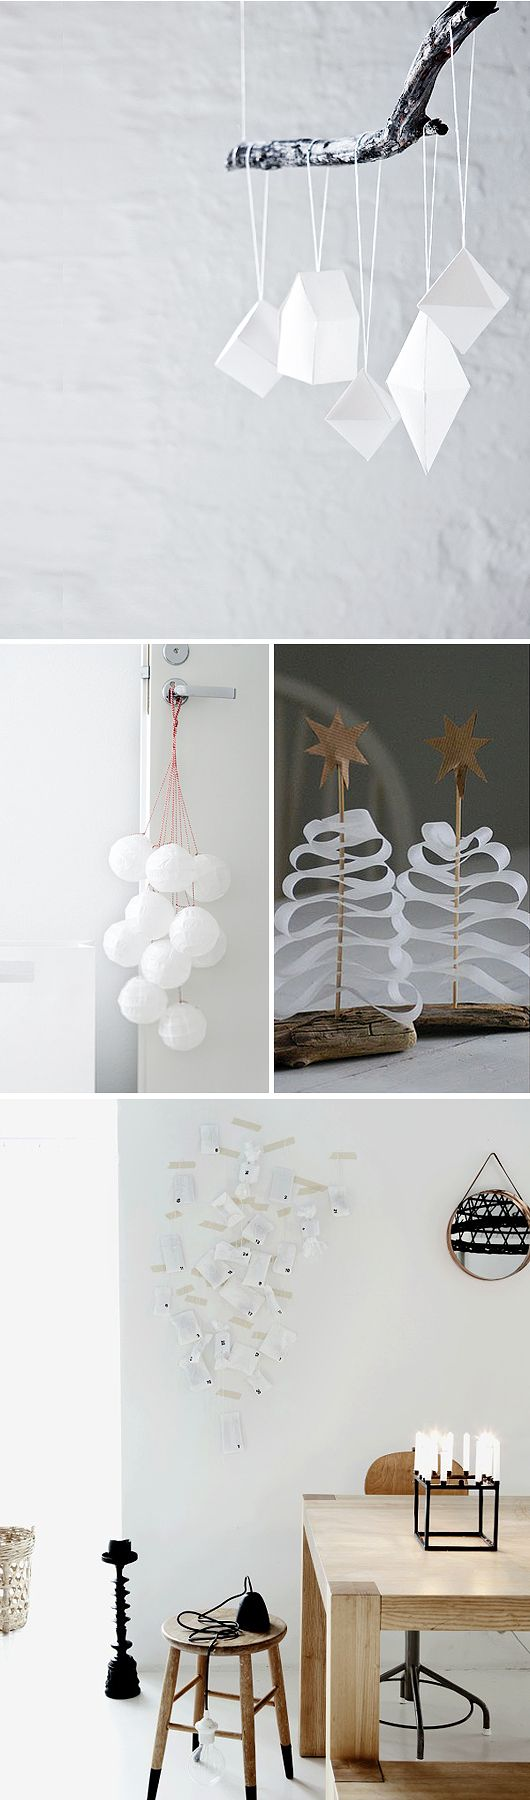 The Christmas Tree is great! I think I will make one this year and add some gold spray paint with silver glitter!!: